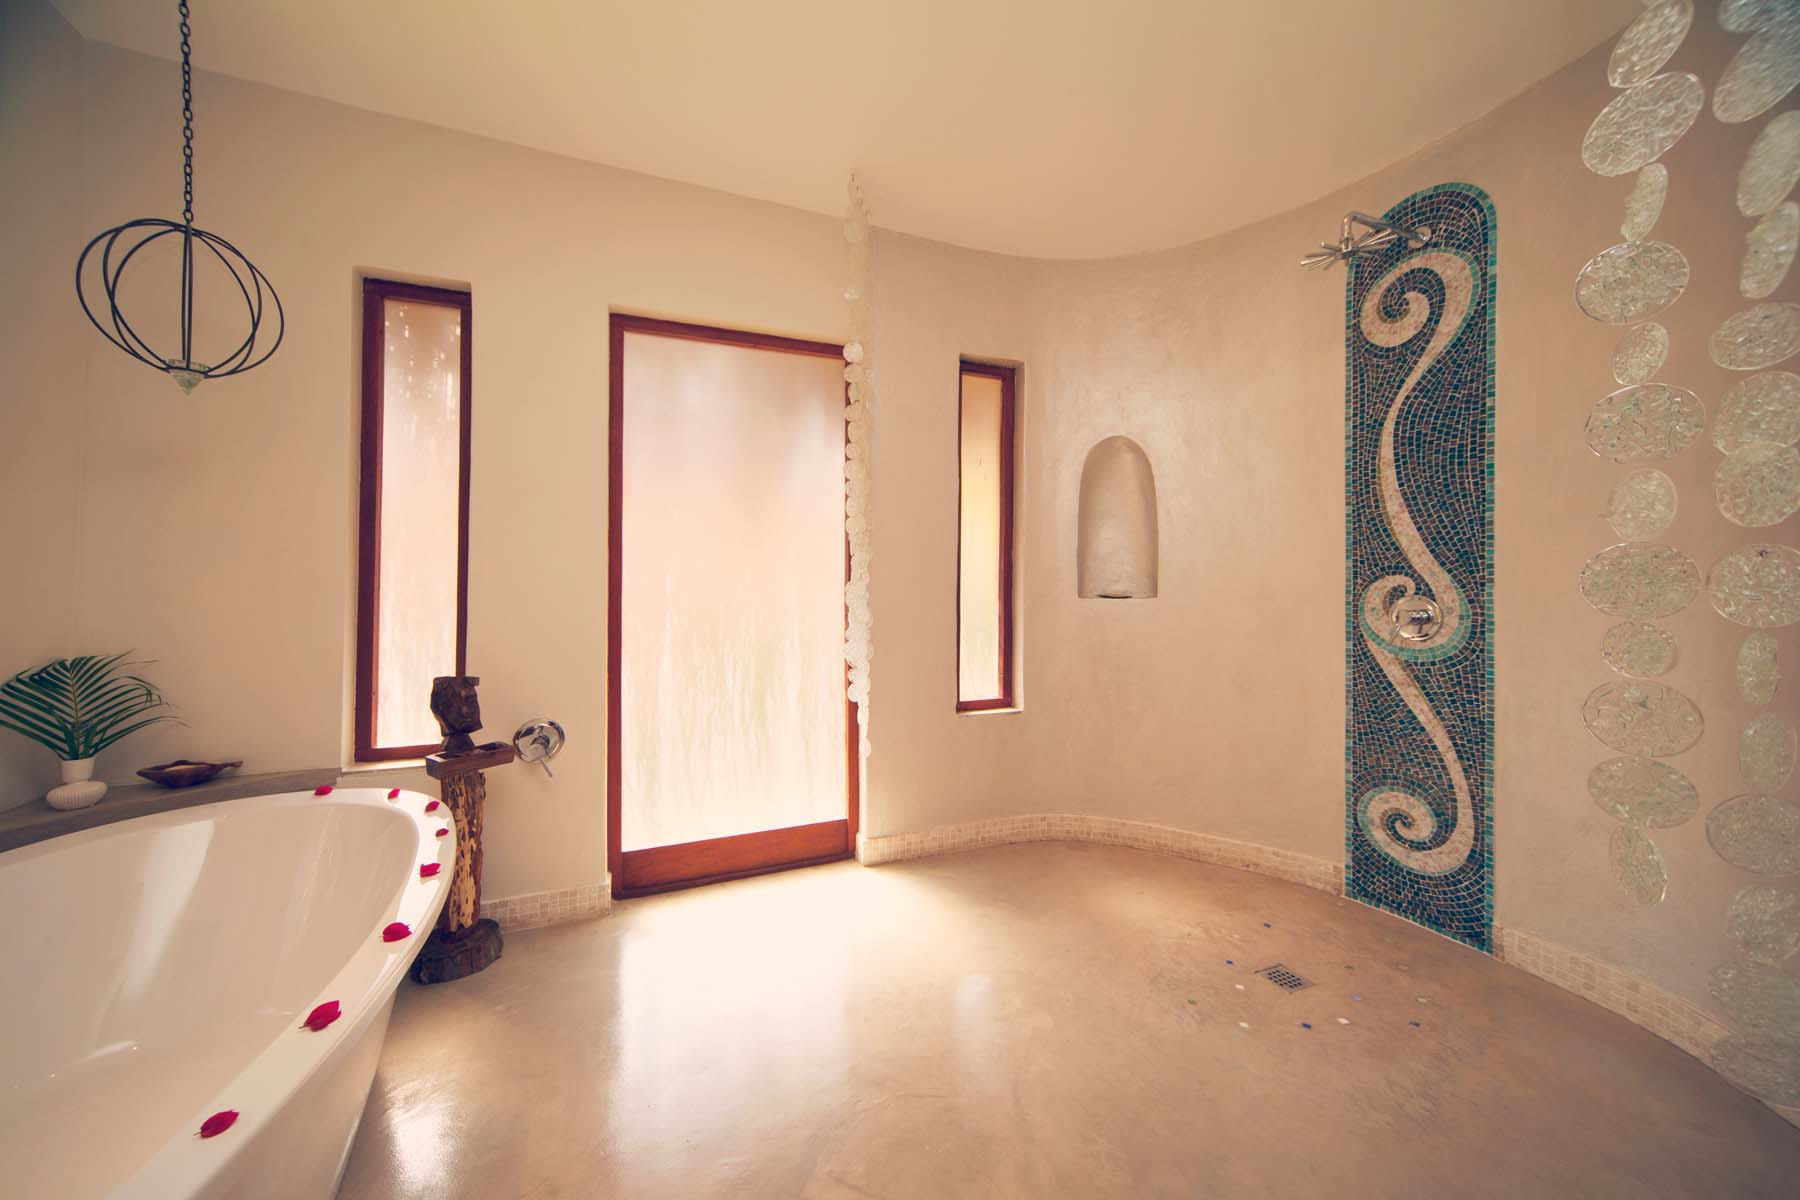 Azura Benguerra Infinity Beach Villa bathroom with bad